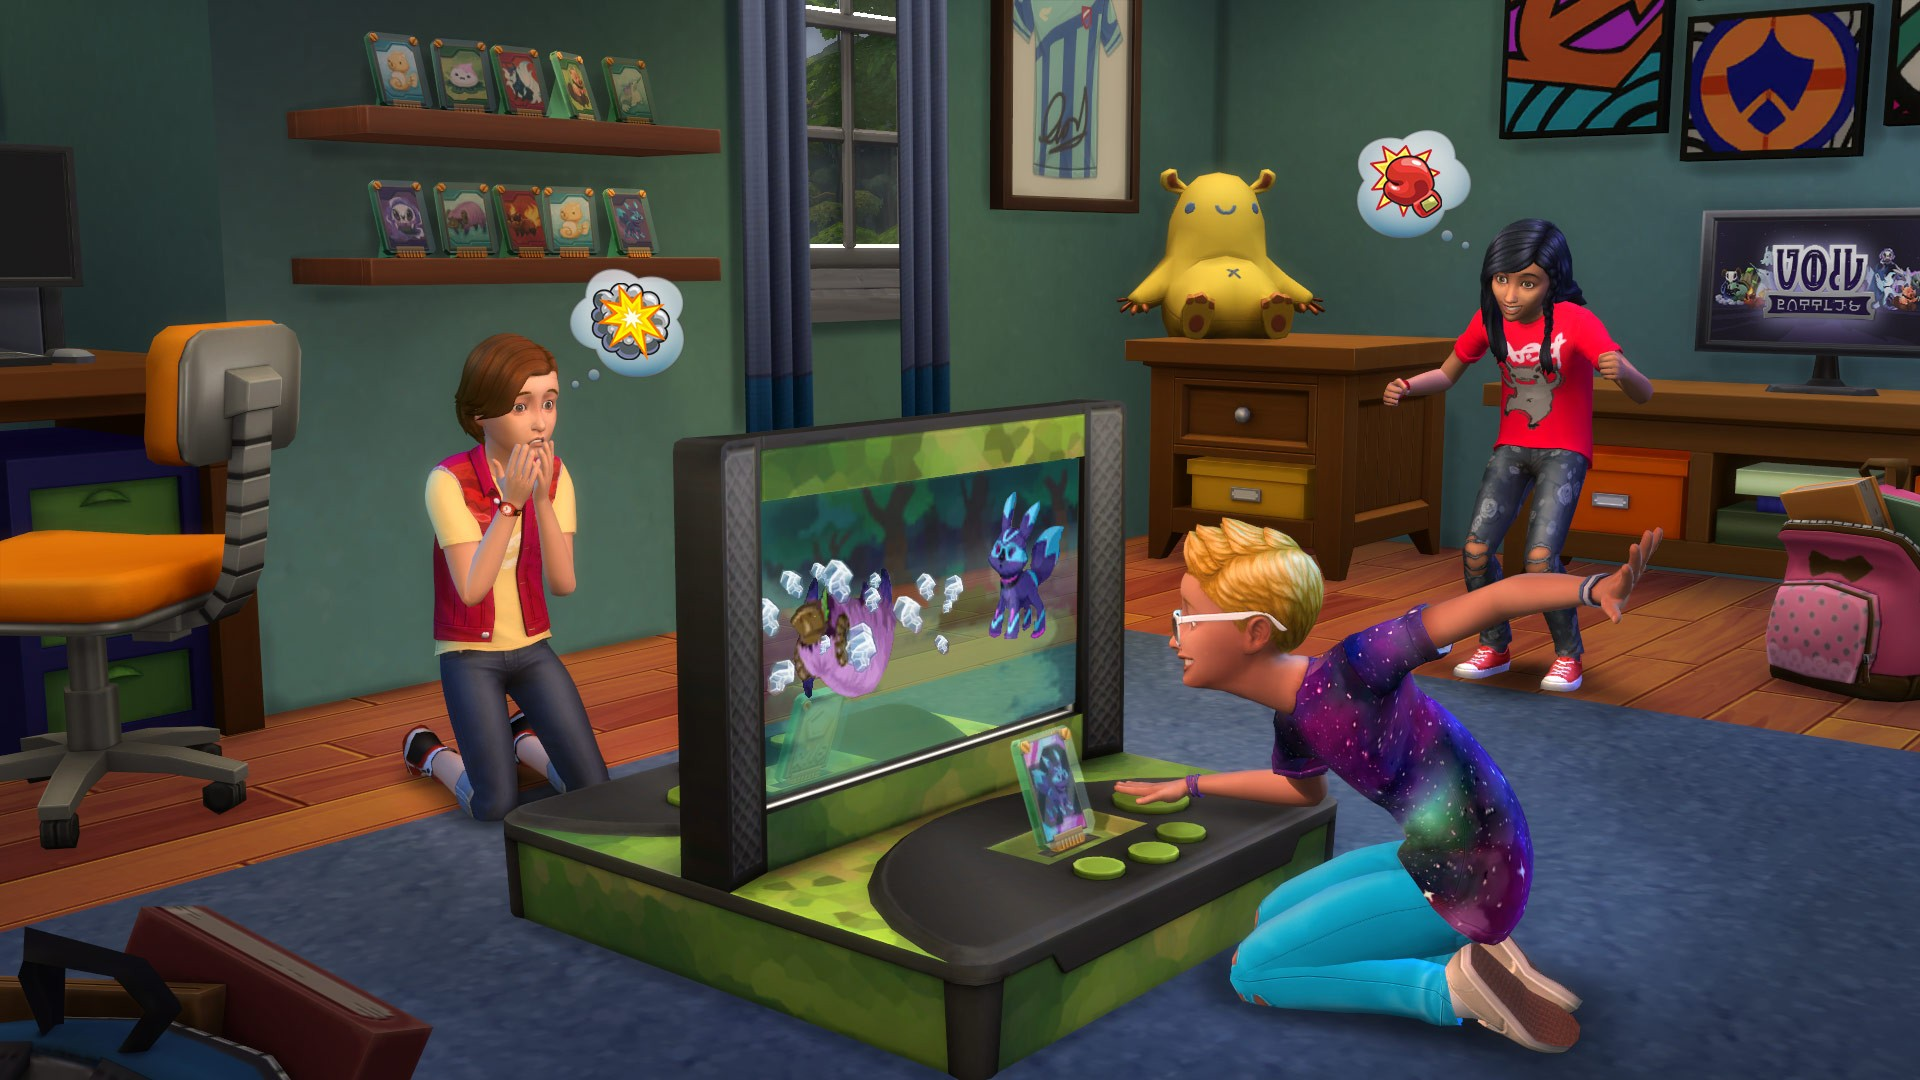 Sims Online Multiplayer Buy The Sims 4 Bundle Pack 4 Pc Game Origin Download